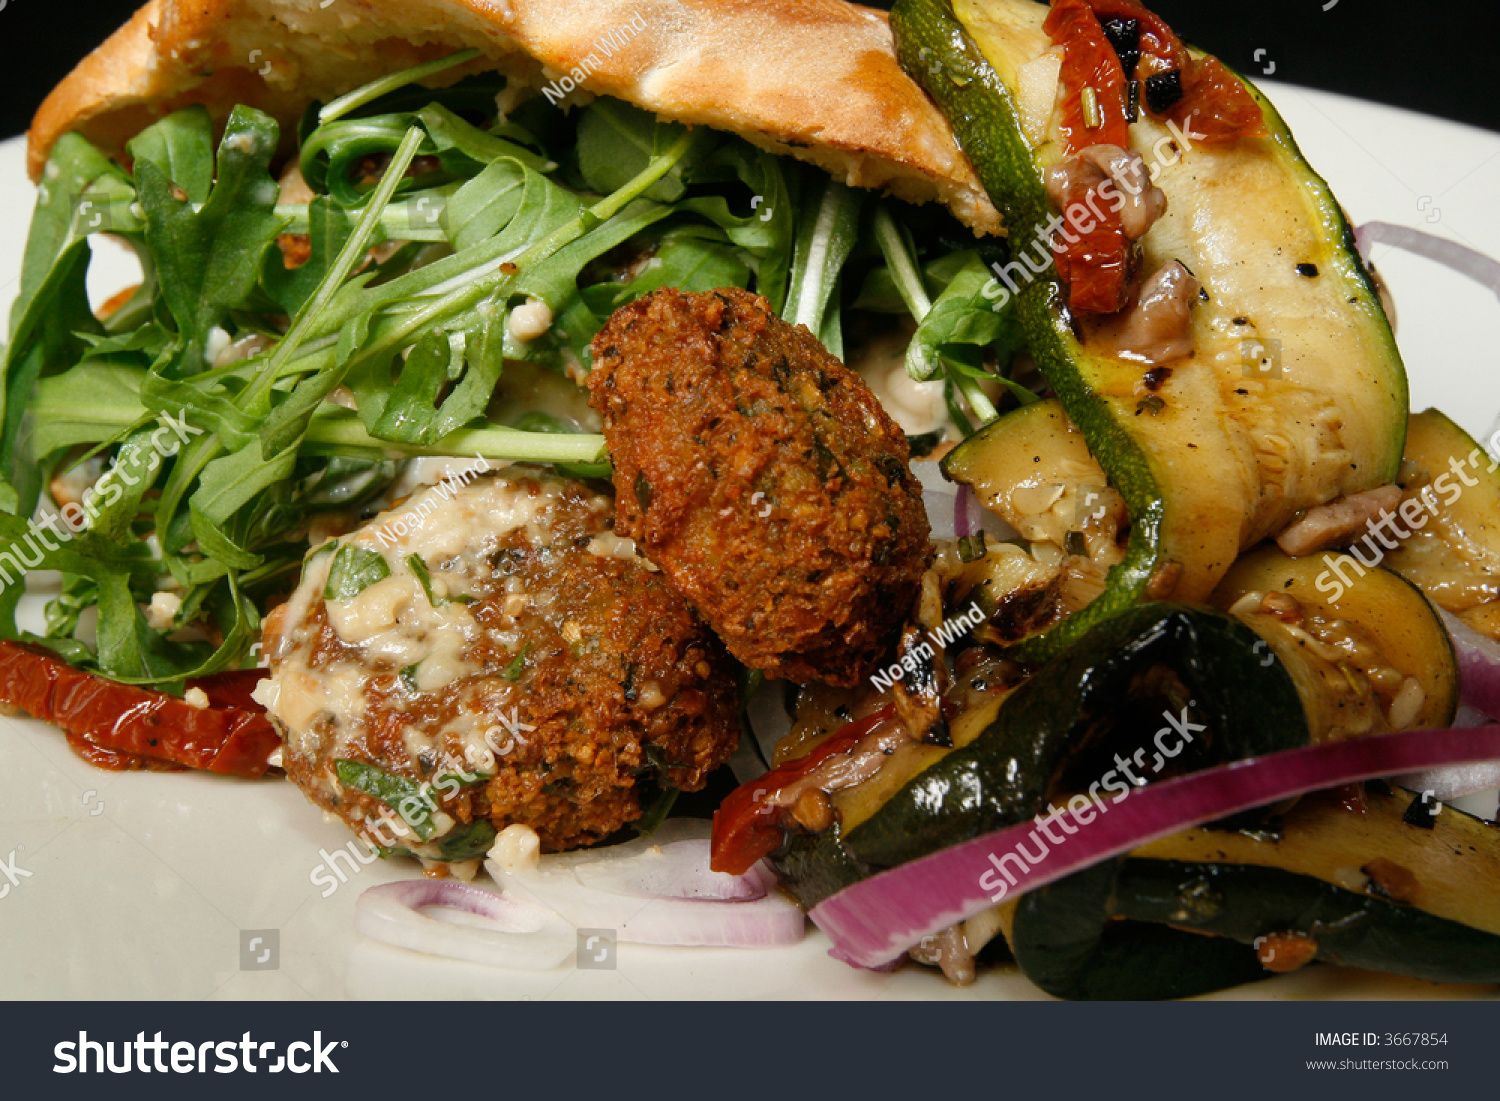 Gourmet Falafel - Famous Middle Eastern Dish, With A Stylish Twist ...